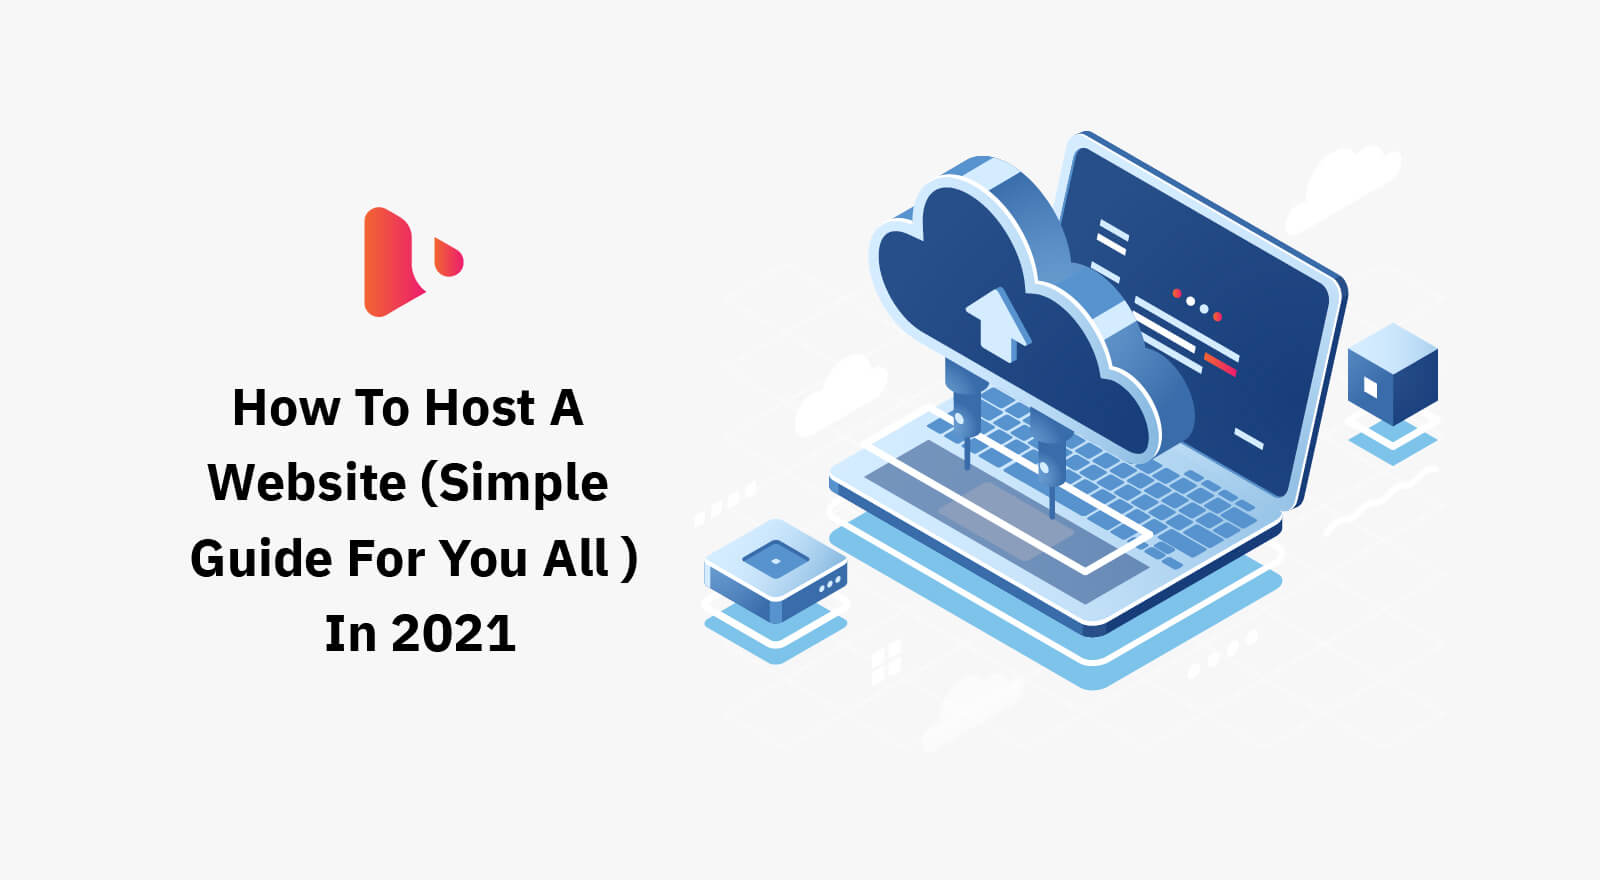 HOW TO HOST A WEBSITE (SIMPLE GUIDE FOR YOU ALL) IN 2021